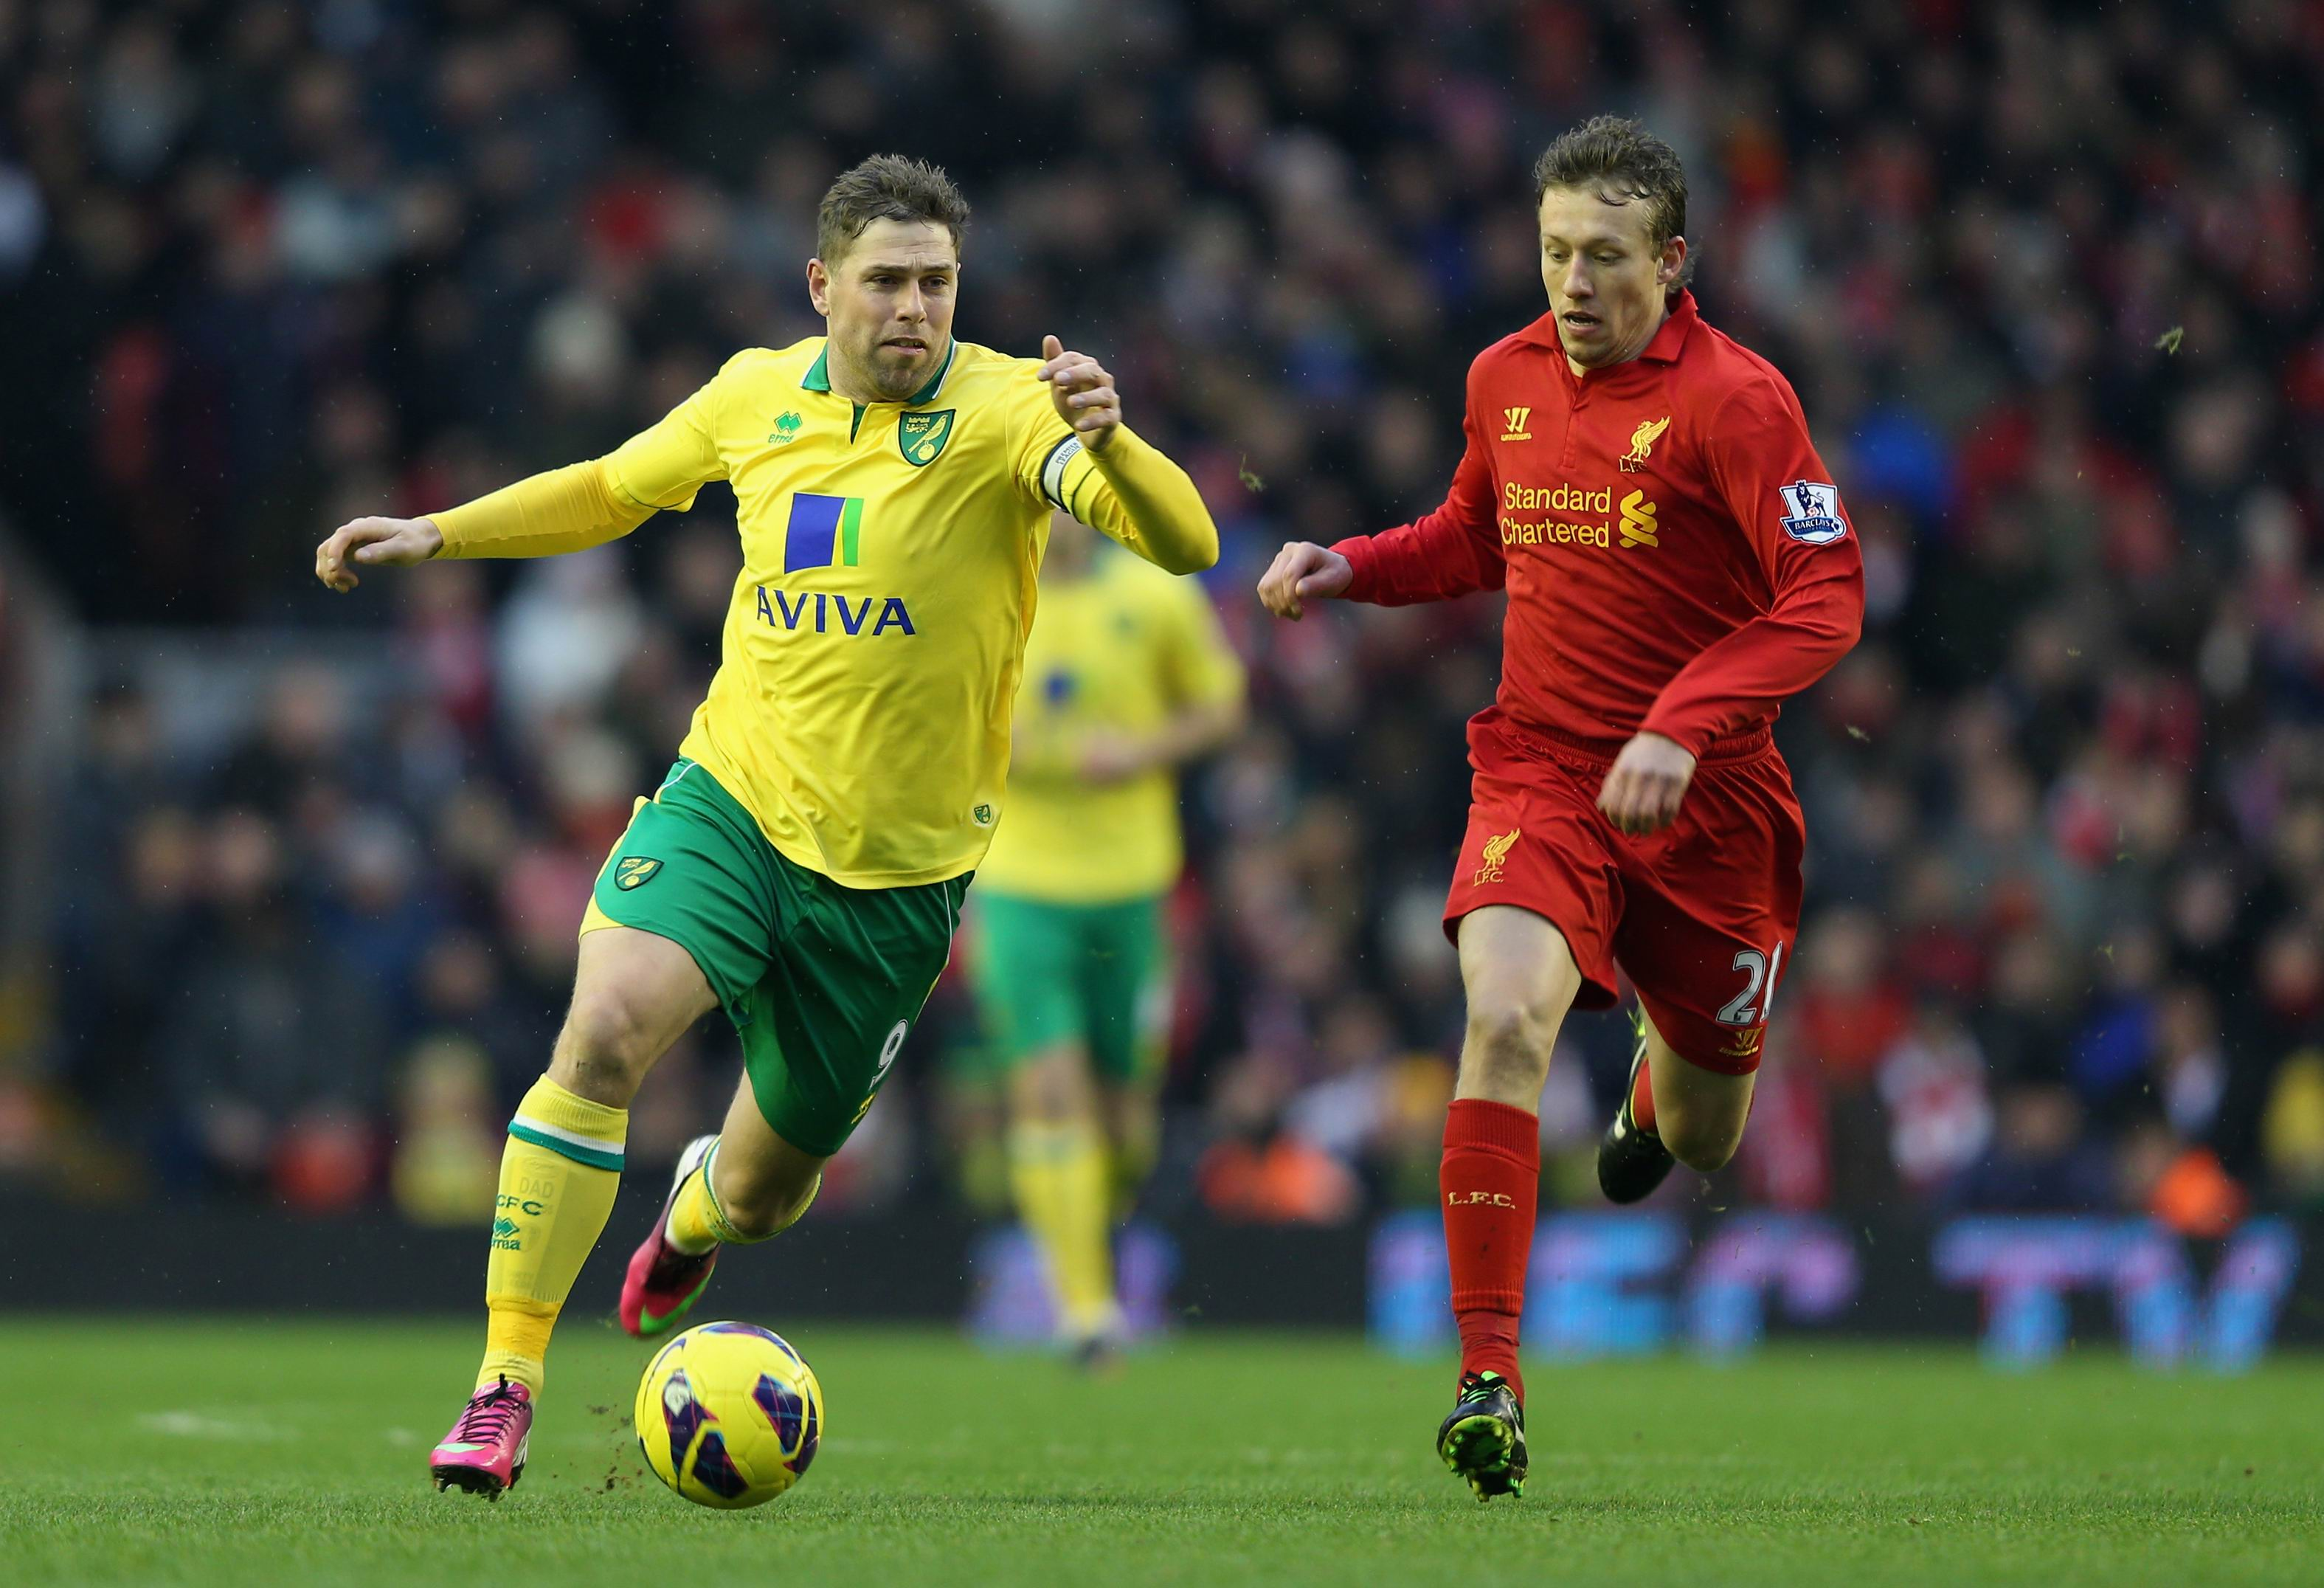 Grant Holt in attack for Norwich City against Liverpool during the 2012-13 season.